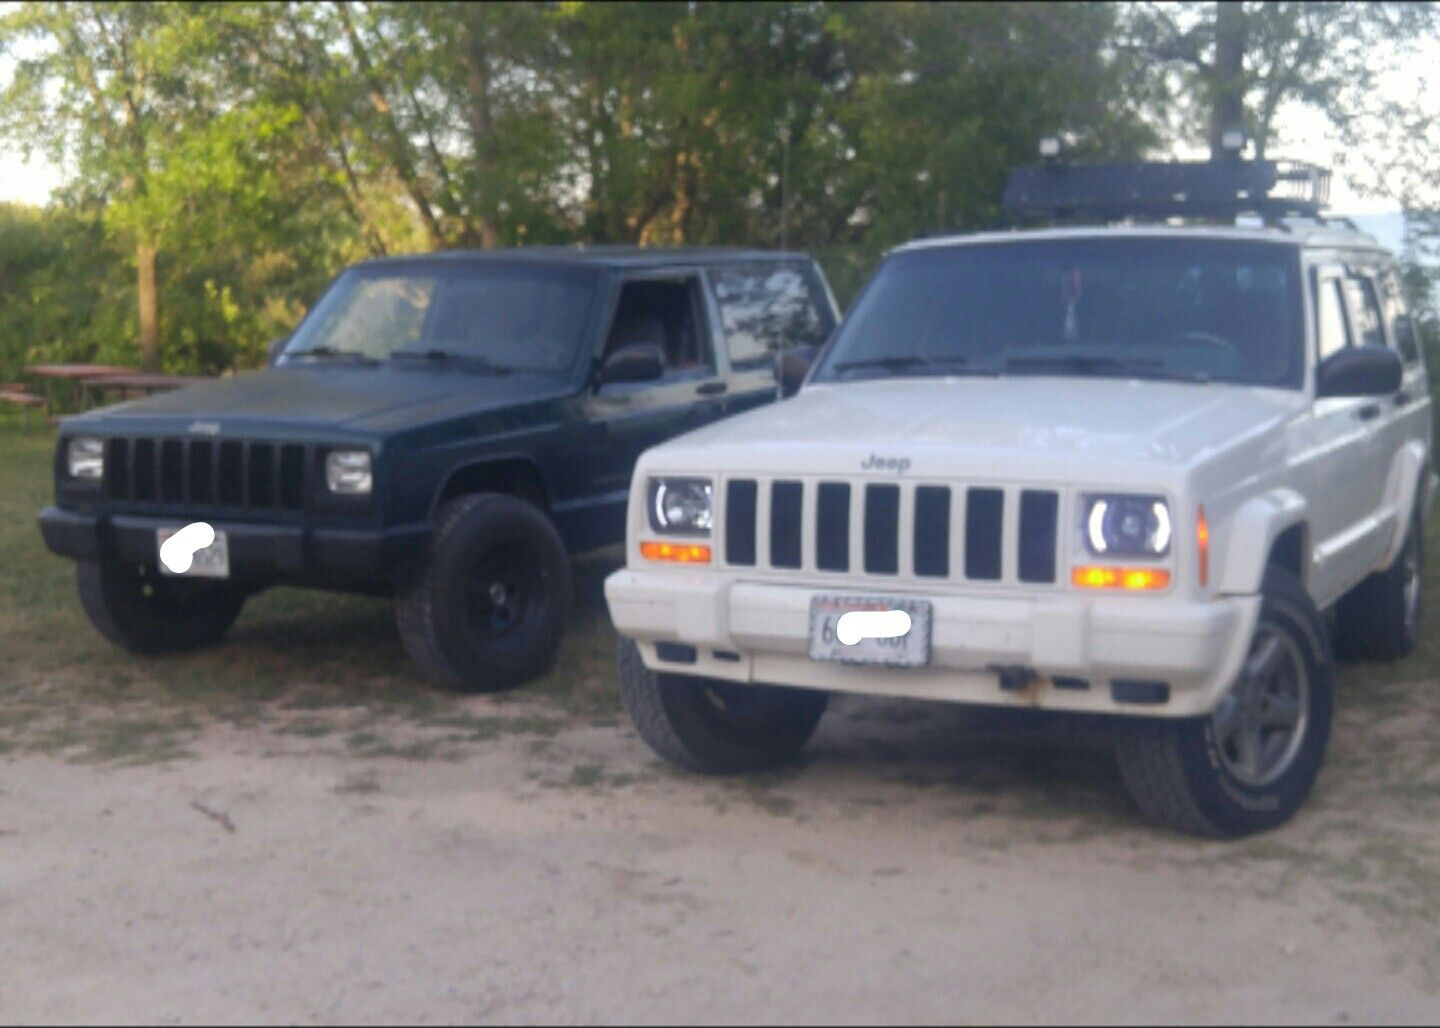 Pair Of Cherokees Jeep xj, Jeep cherokee, Offroad vehicles